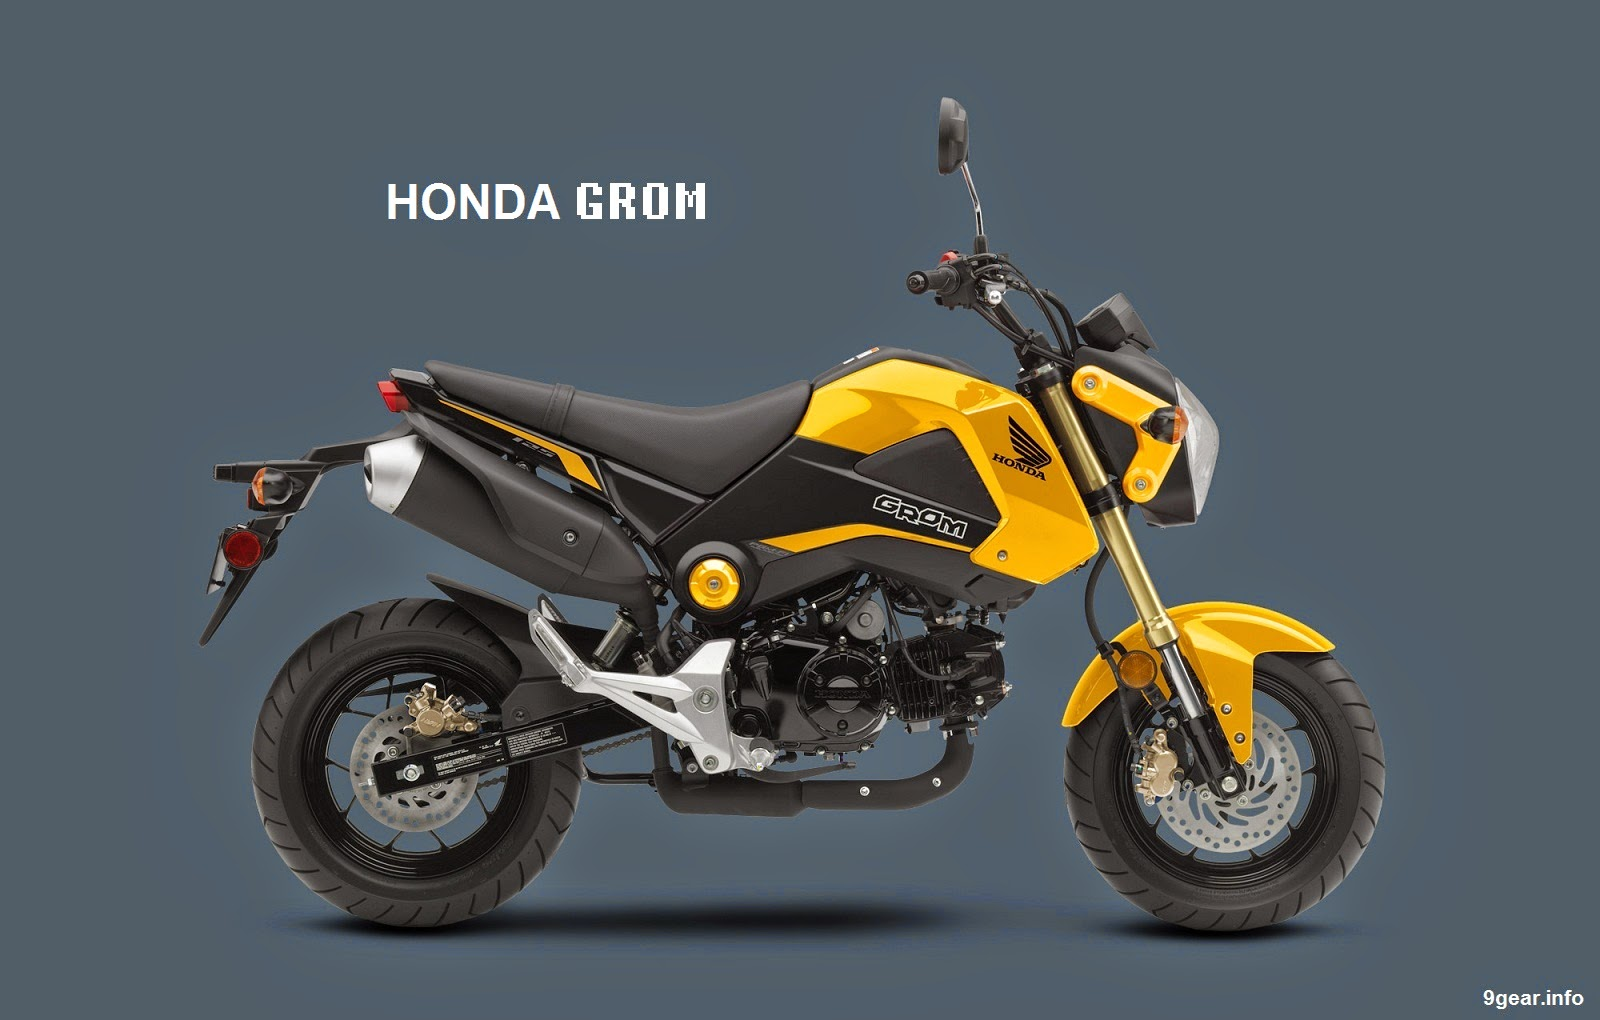 Honda Grom 2019 >> Honda Grom 125cc - Compact Motorcycle | Car Reviews | New Car Pictures for 2018, 2019